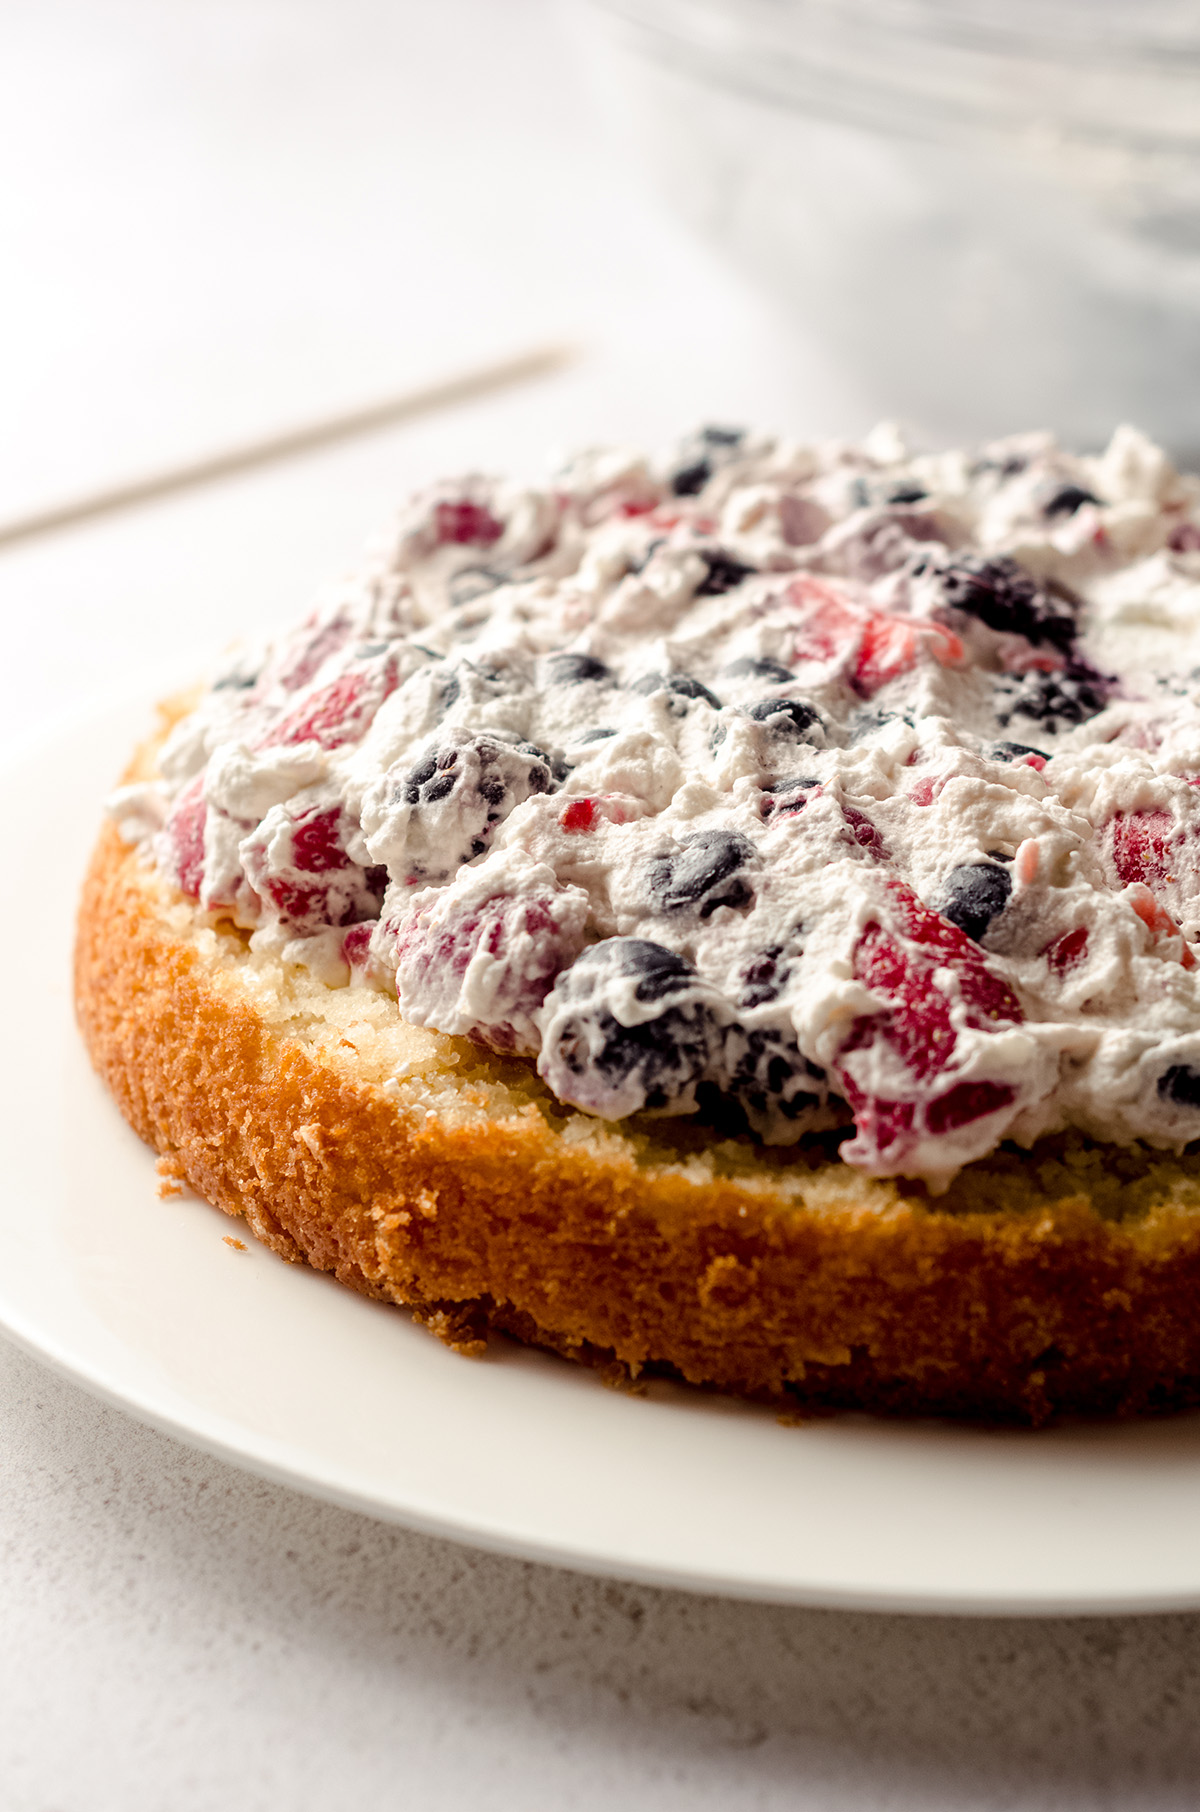 whipped cream and berry filling on a layer of berry cake